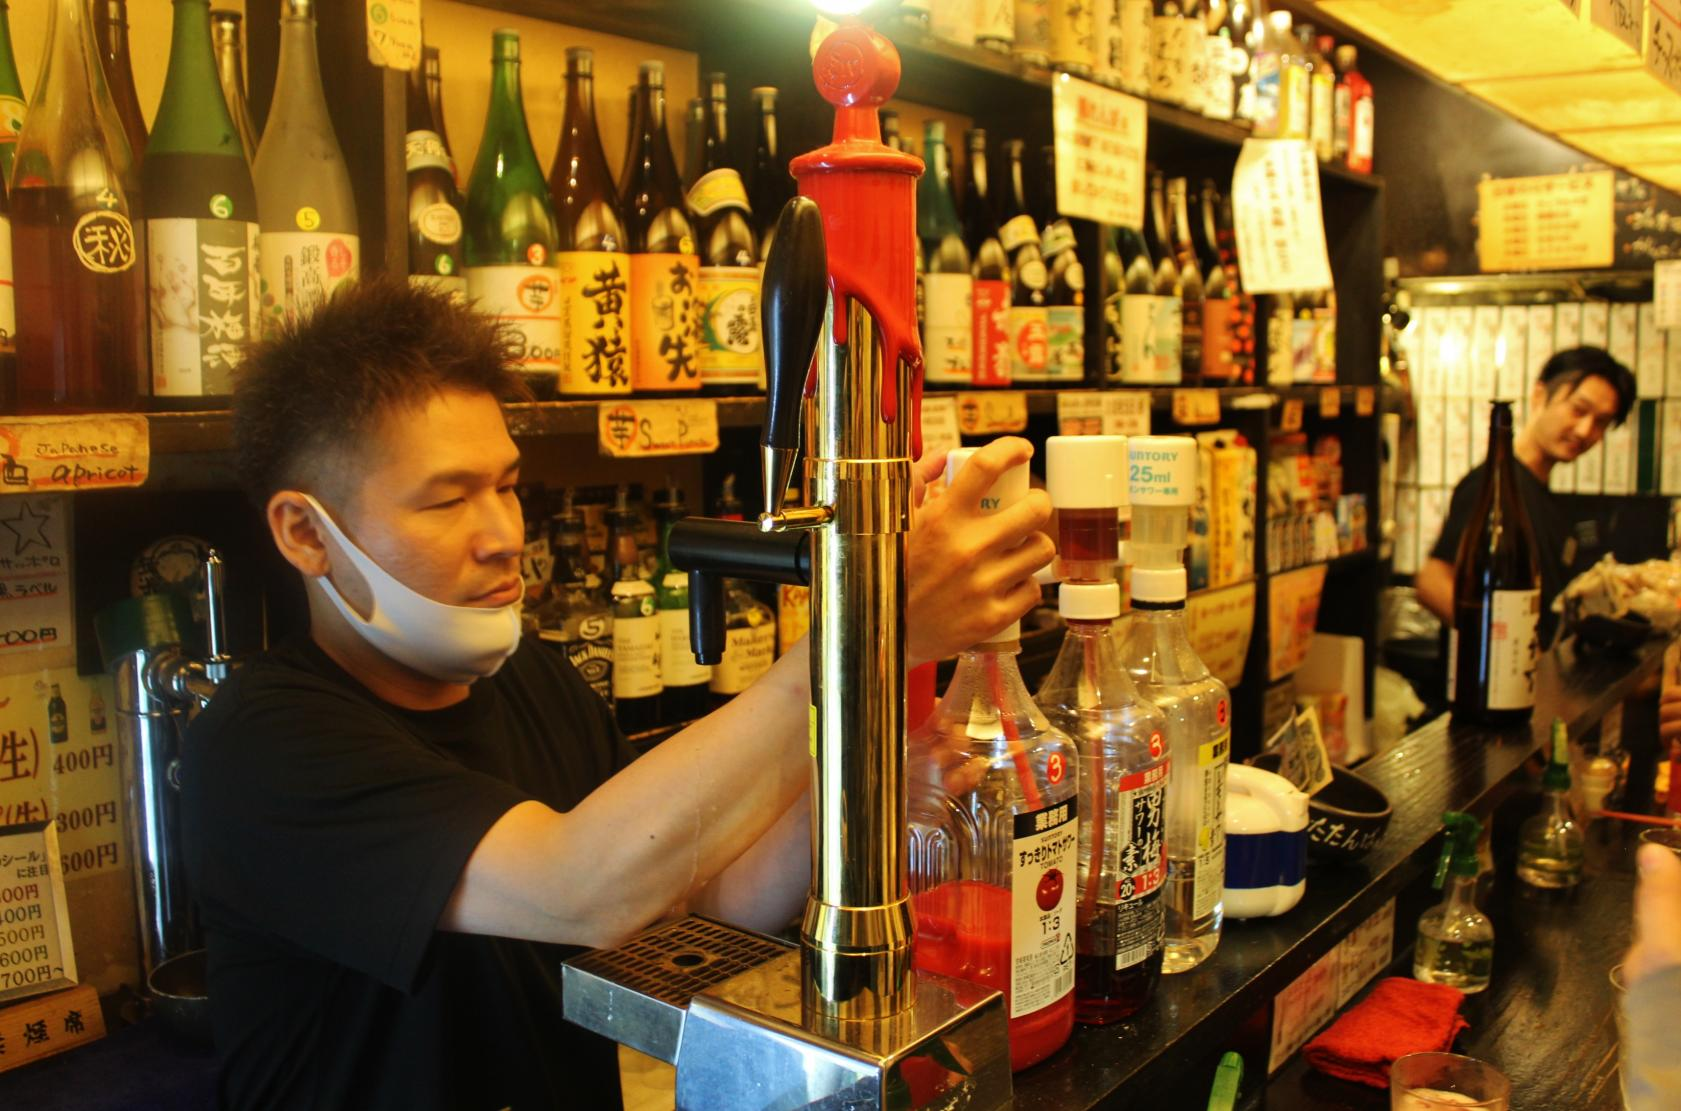 Cheers! A Standing Izakaya Bar where you can Connect with People-1